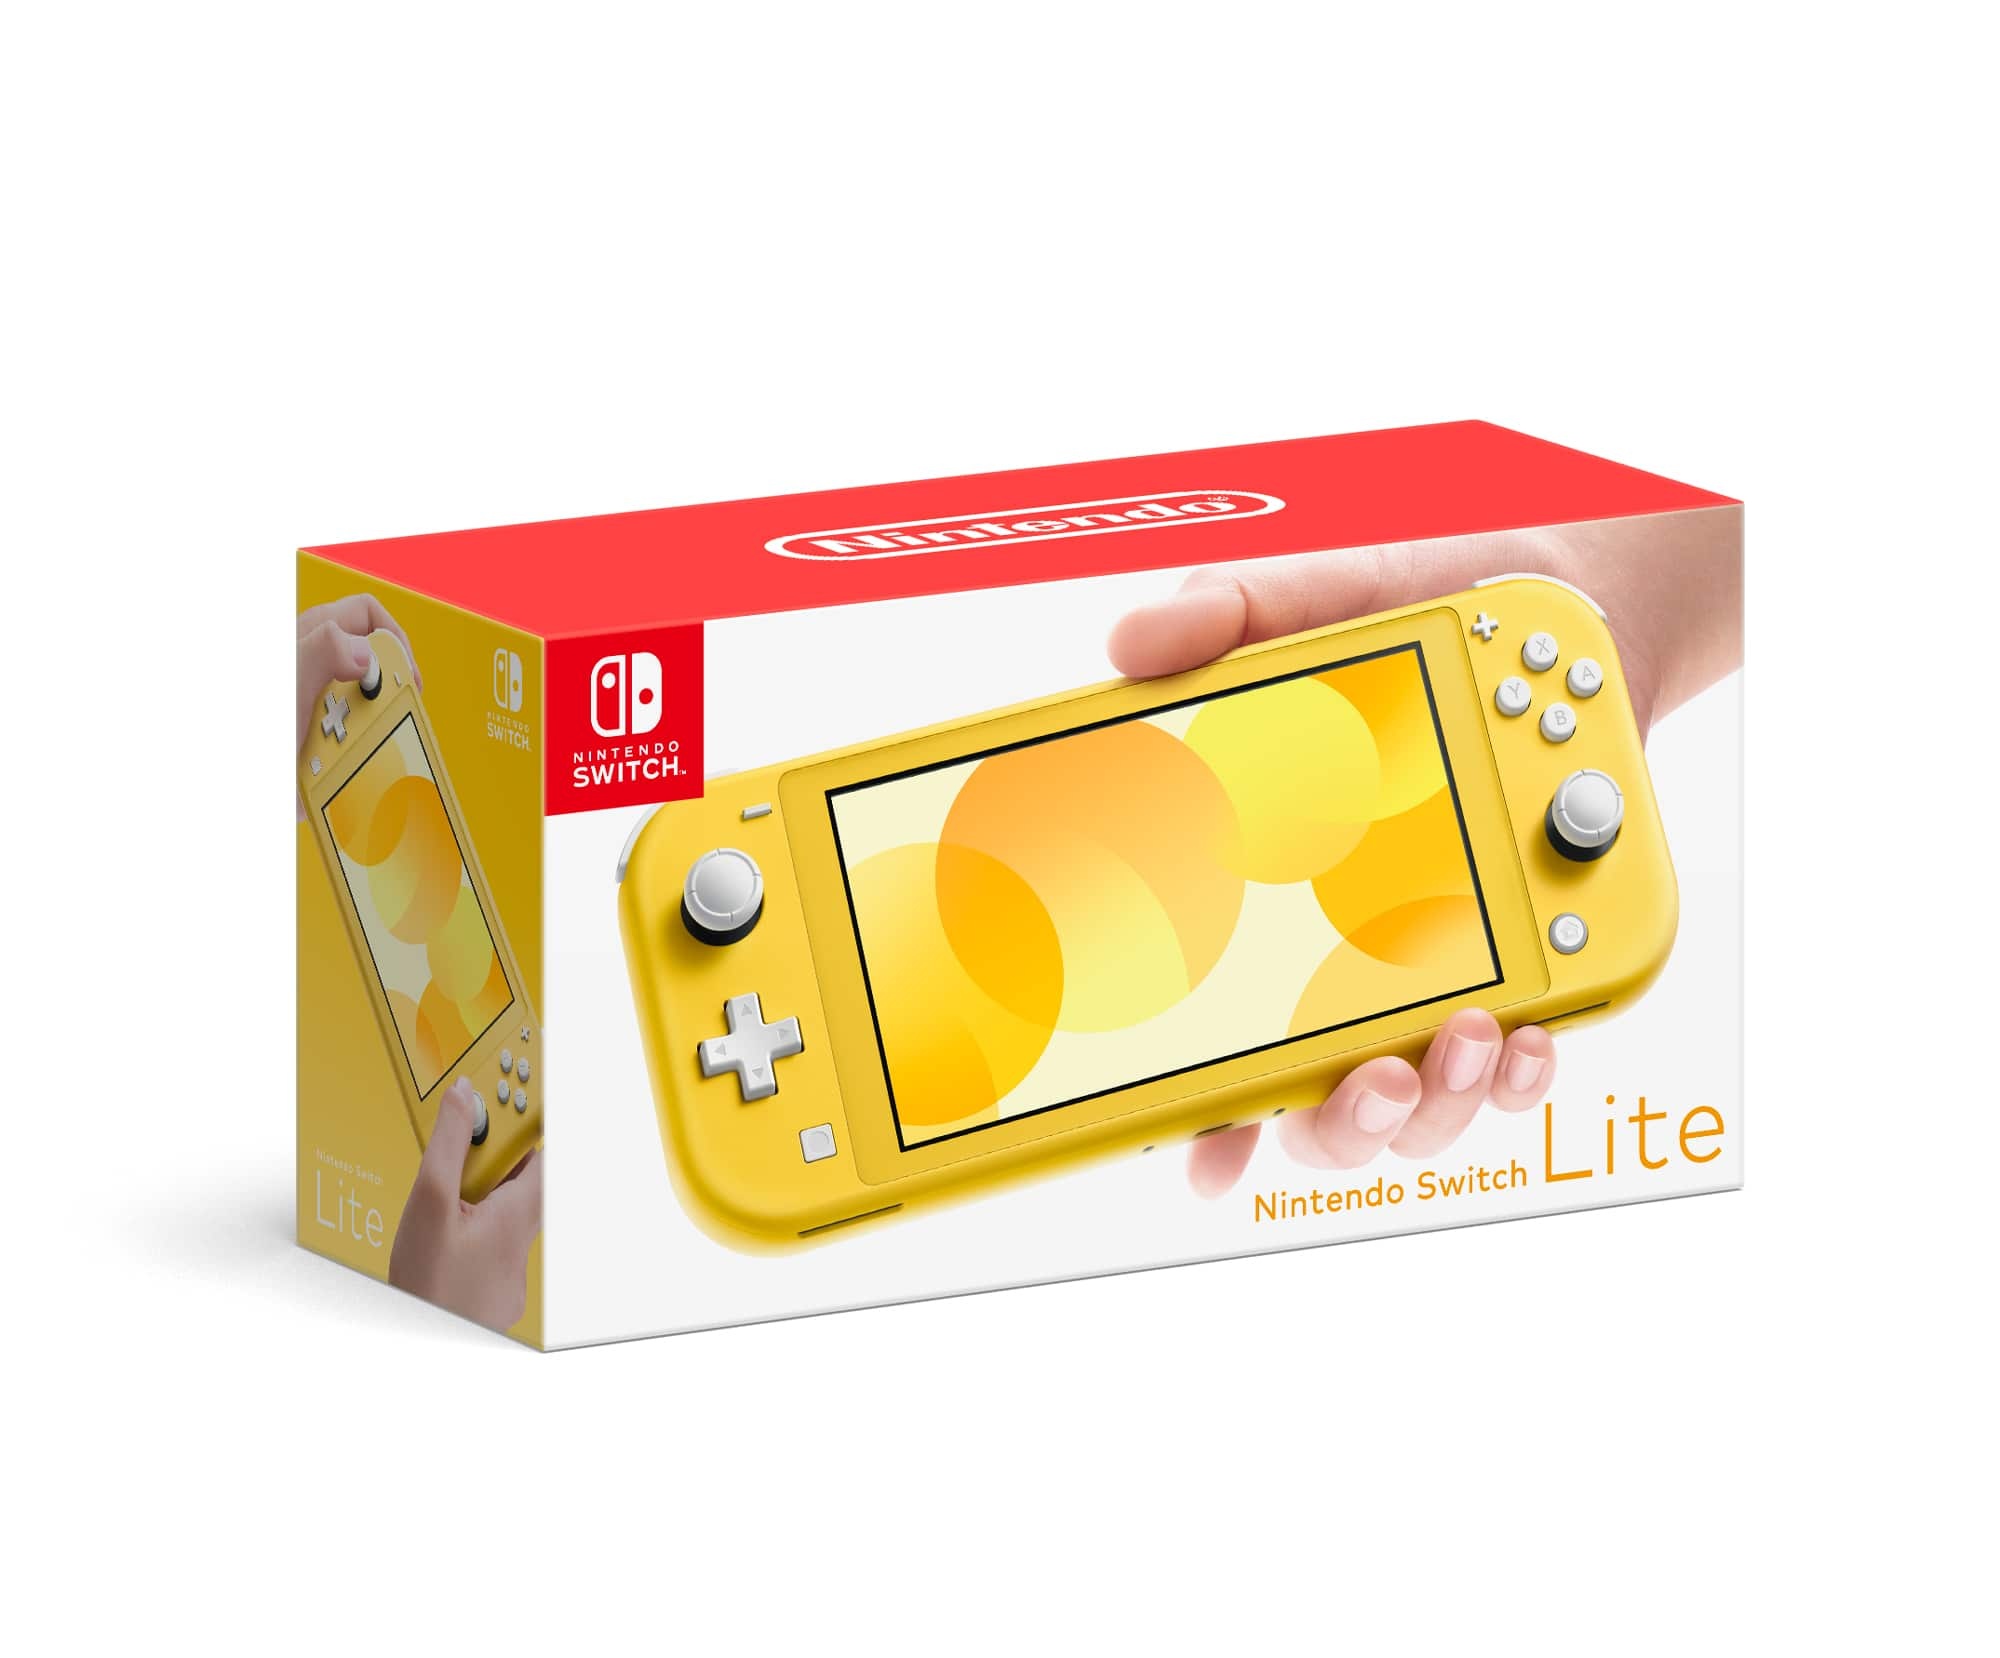 Nintendo Switch Lite - Walmart Back in stock all 3 colors